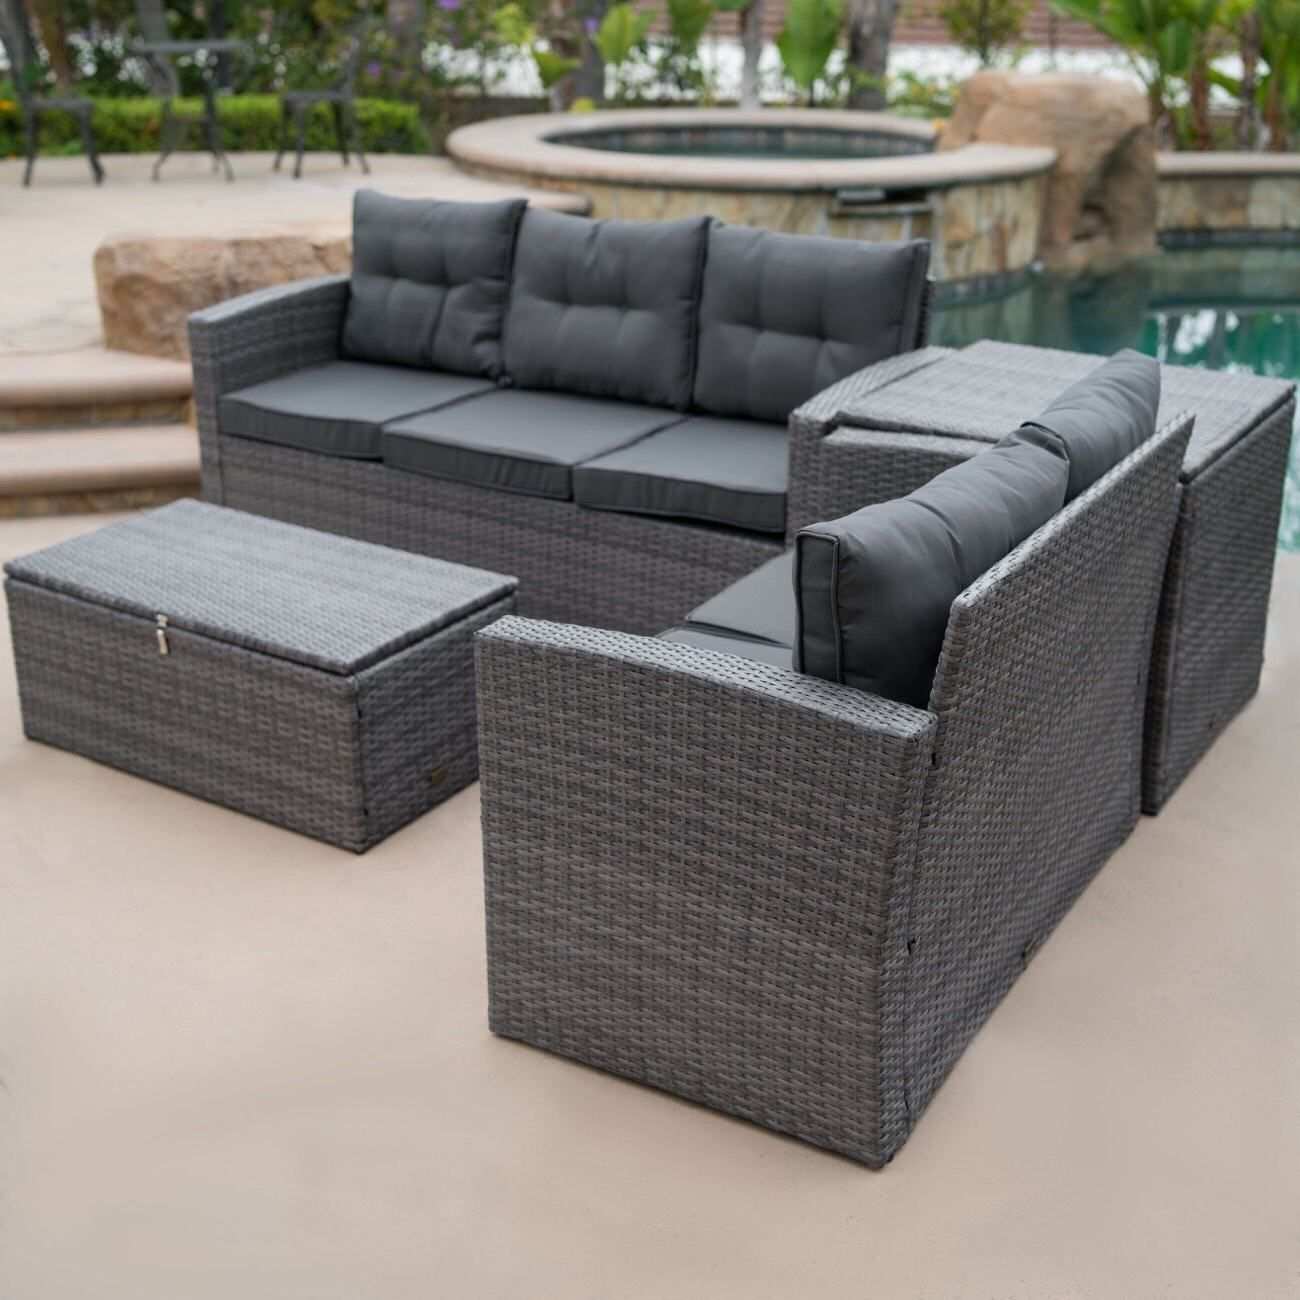 Burruss Patio Sectionals With Cushions With Widely Used Rowley Patio Sectional With Cushions (View 16 of 25)